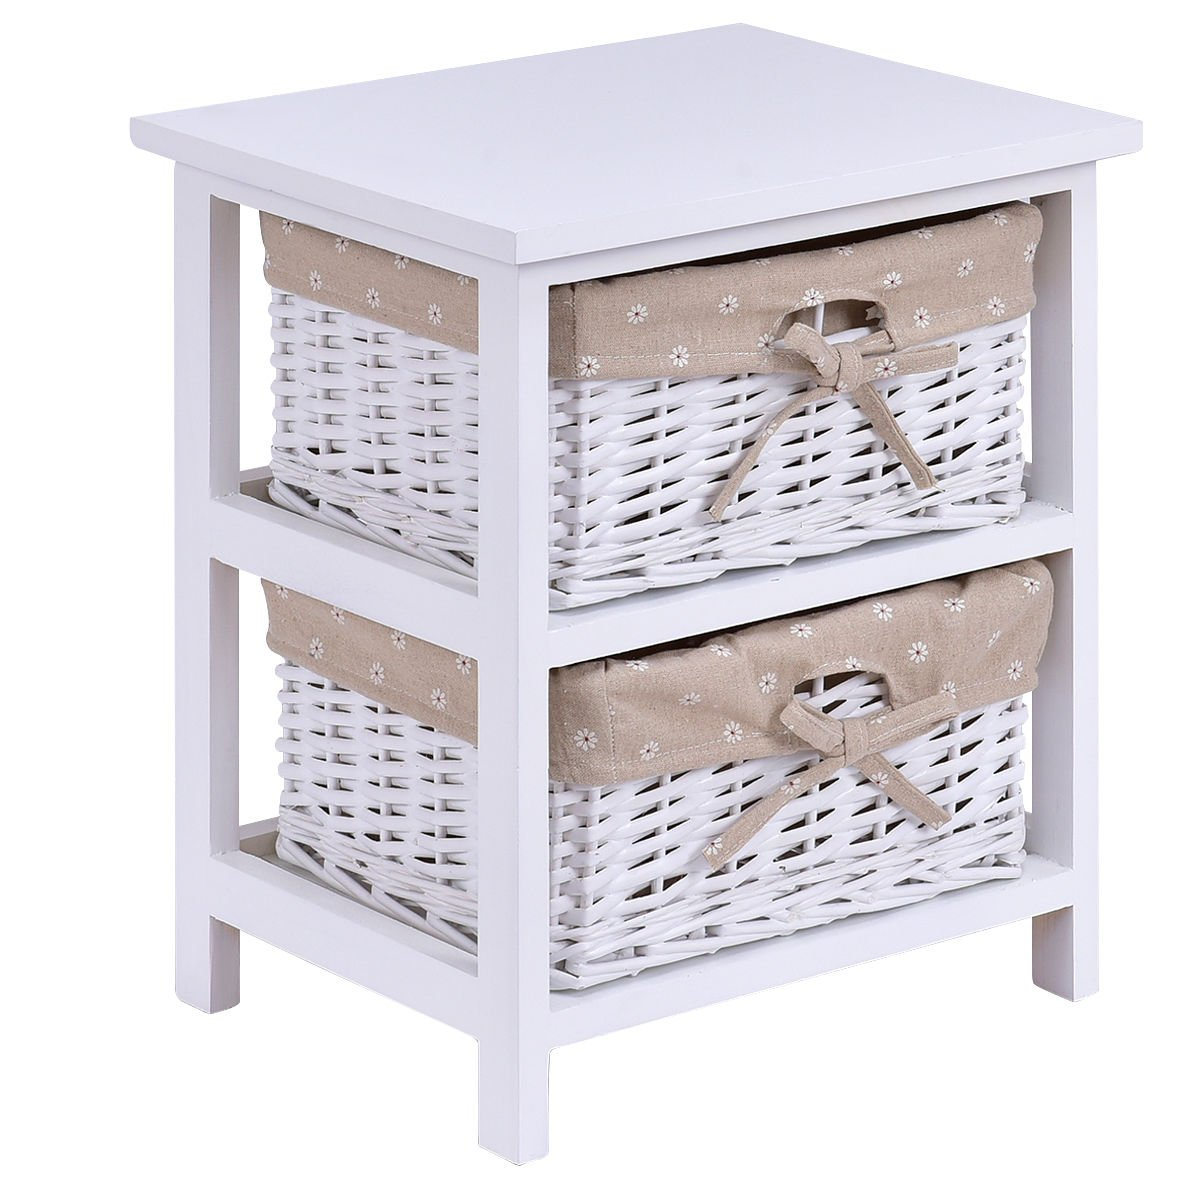 ghp white wood nightstand bedside table mawr metal accent with wicker rattan drawers kitchen dining standard side height marble coffee acrylic round small cherry mini tall lamps